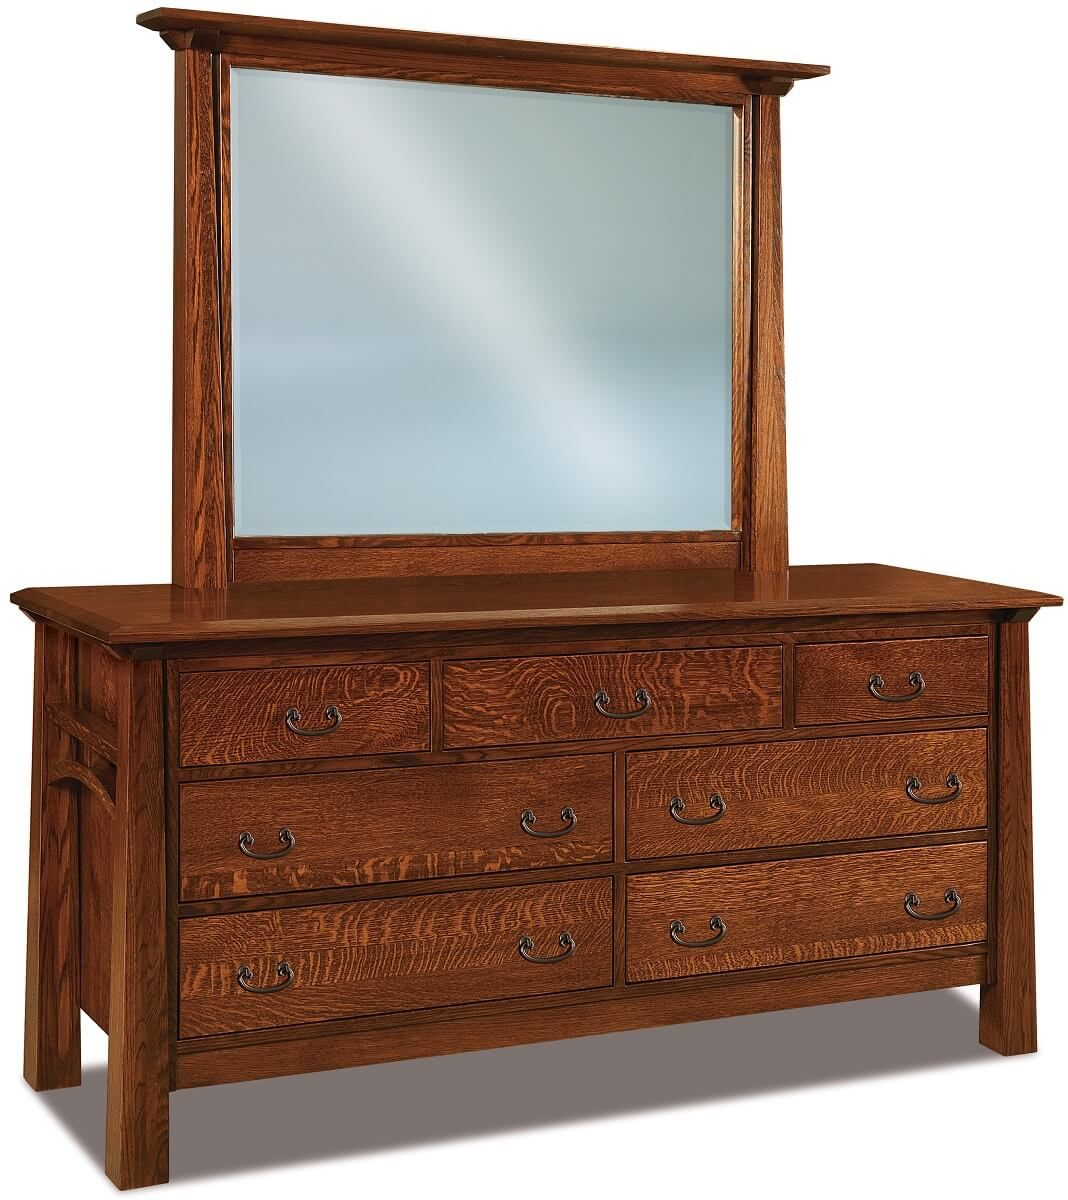 Bellevue Dresser with Mirror